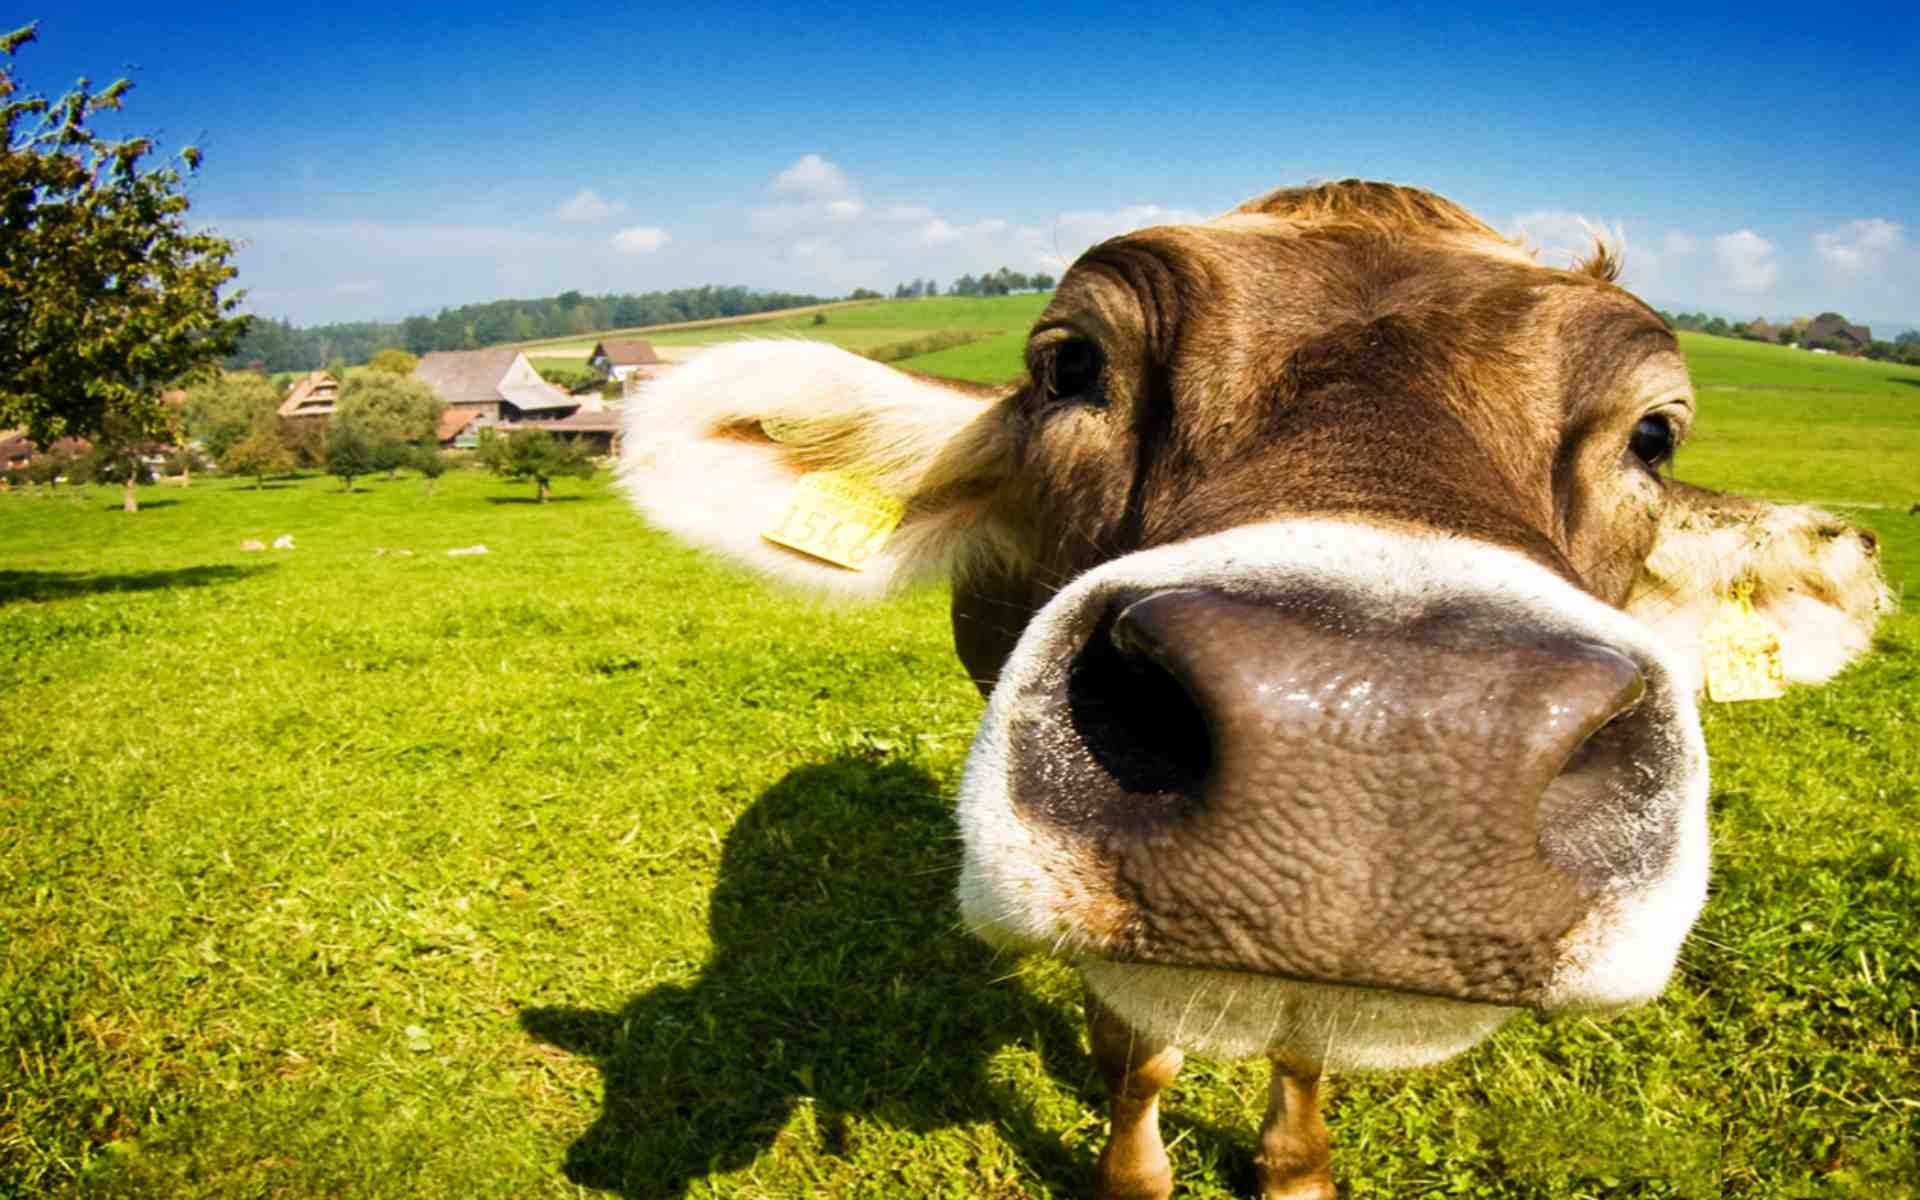 Cow Closeup Face Funny Picture Cows Funny Cow Wallpaper Funny Cow Pictures